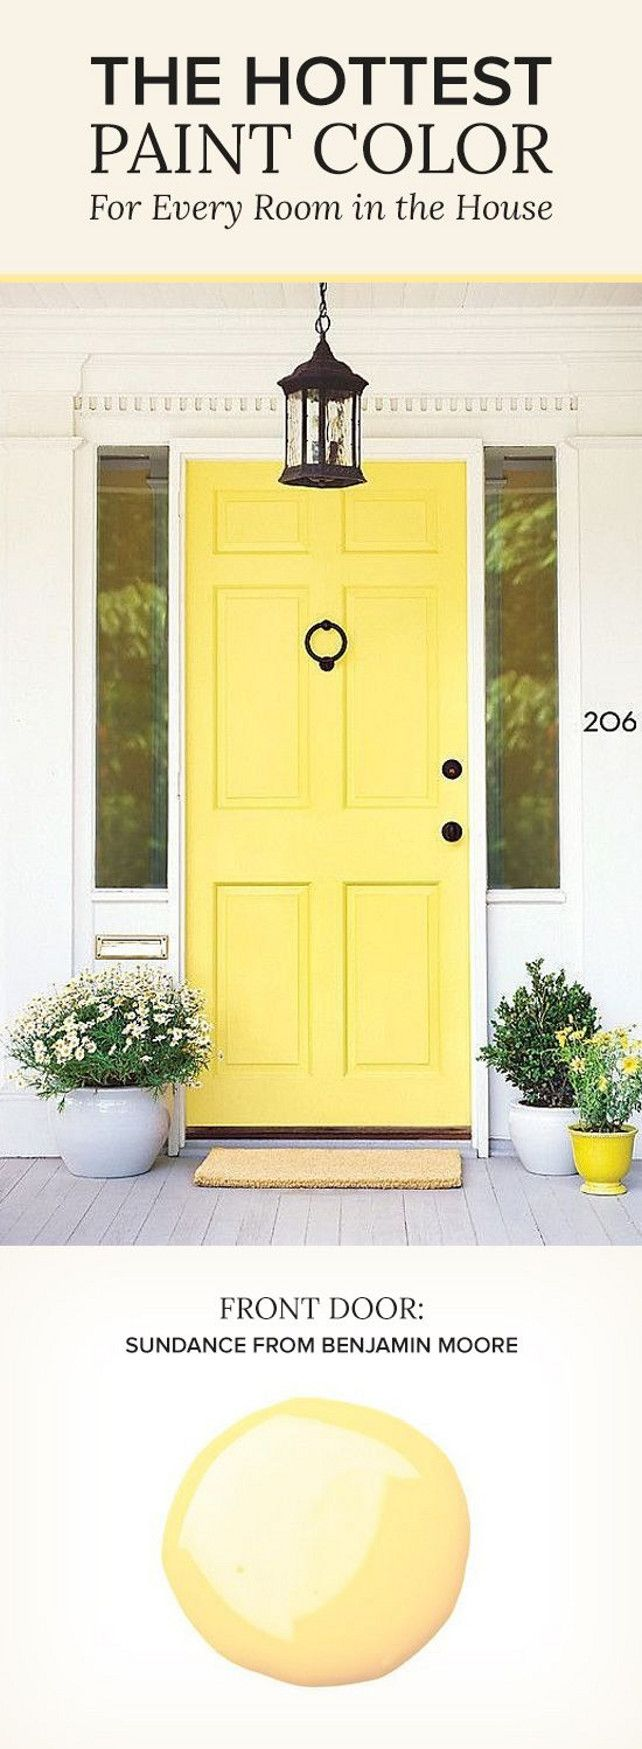 Sundance By Benjamin Moore Yellow Paint Color Front Door Paint Color Benjaminmooresundance